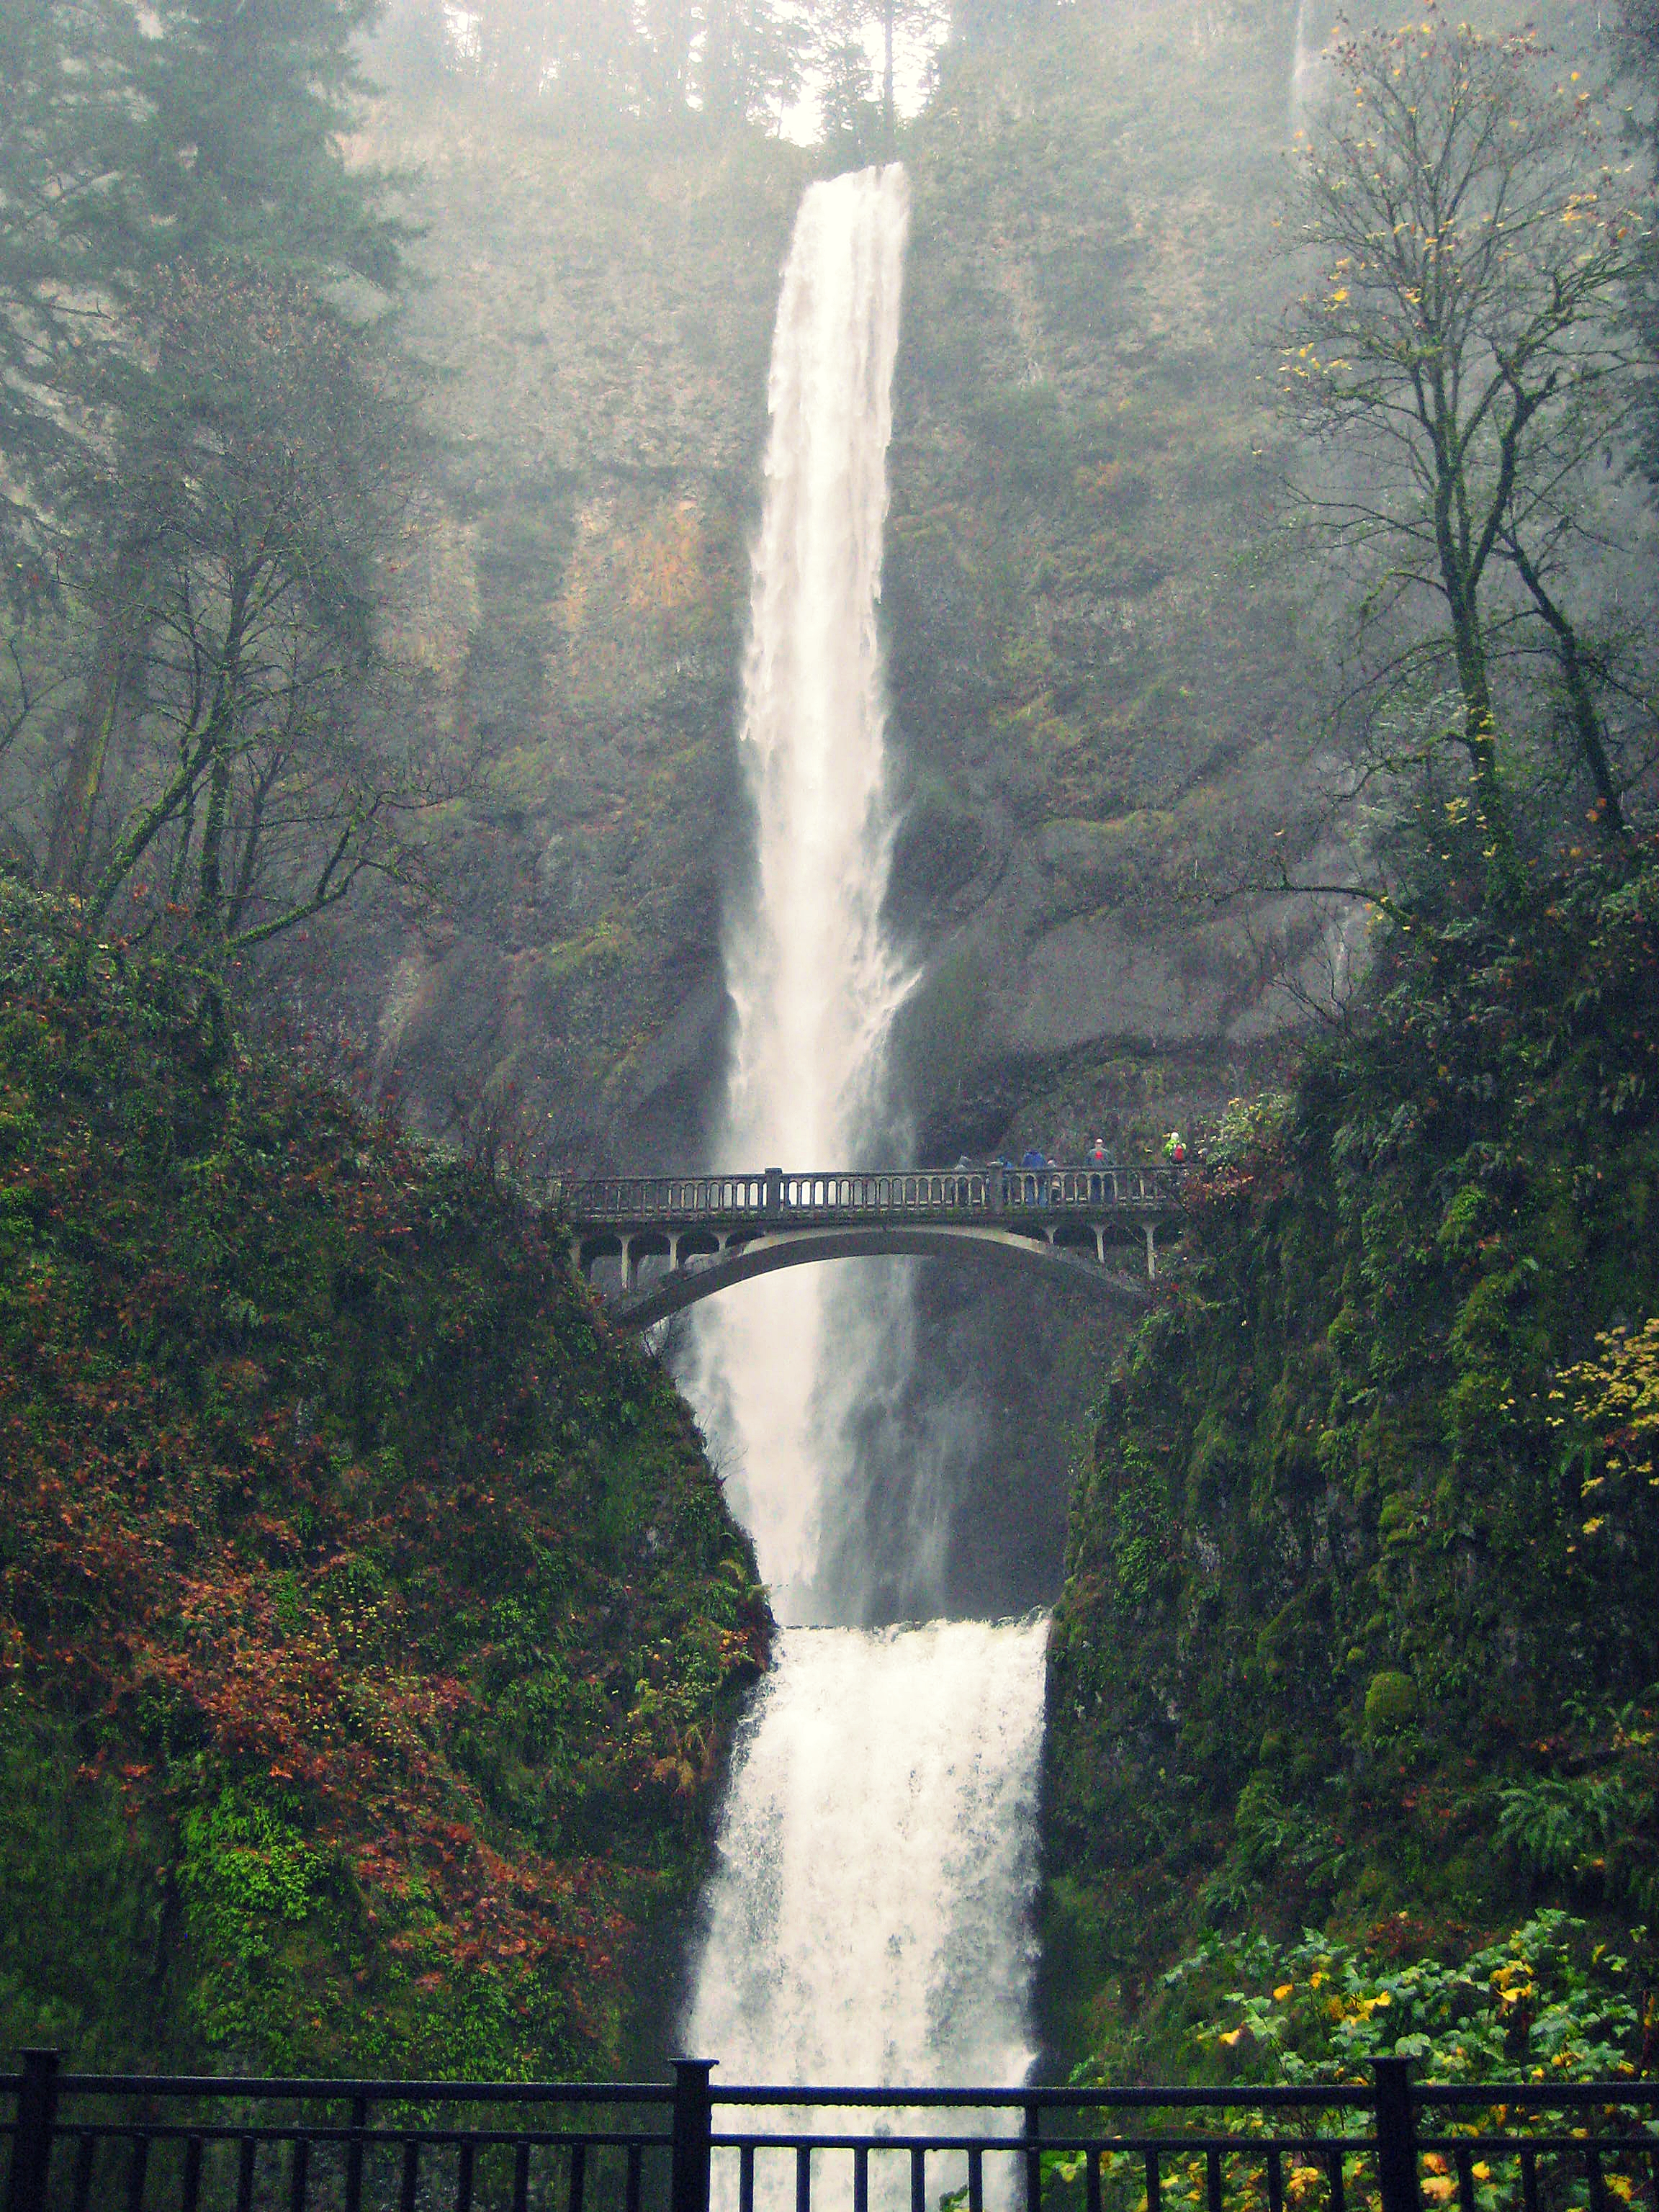 | MULTNOMAH FALLS, OR |